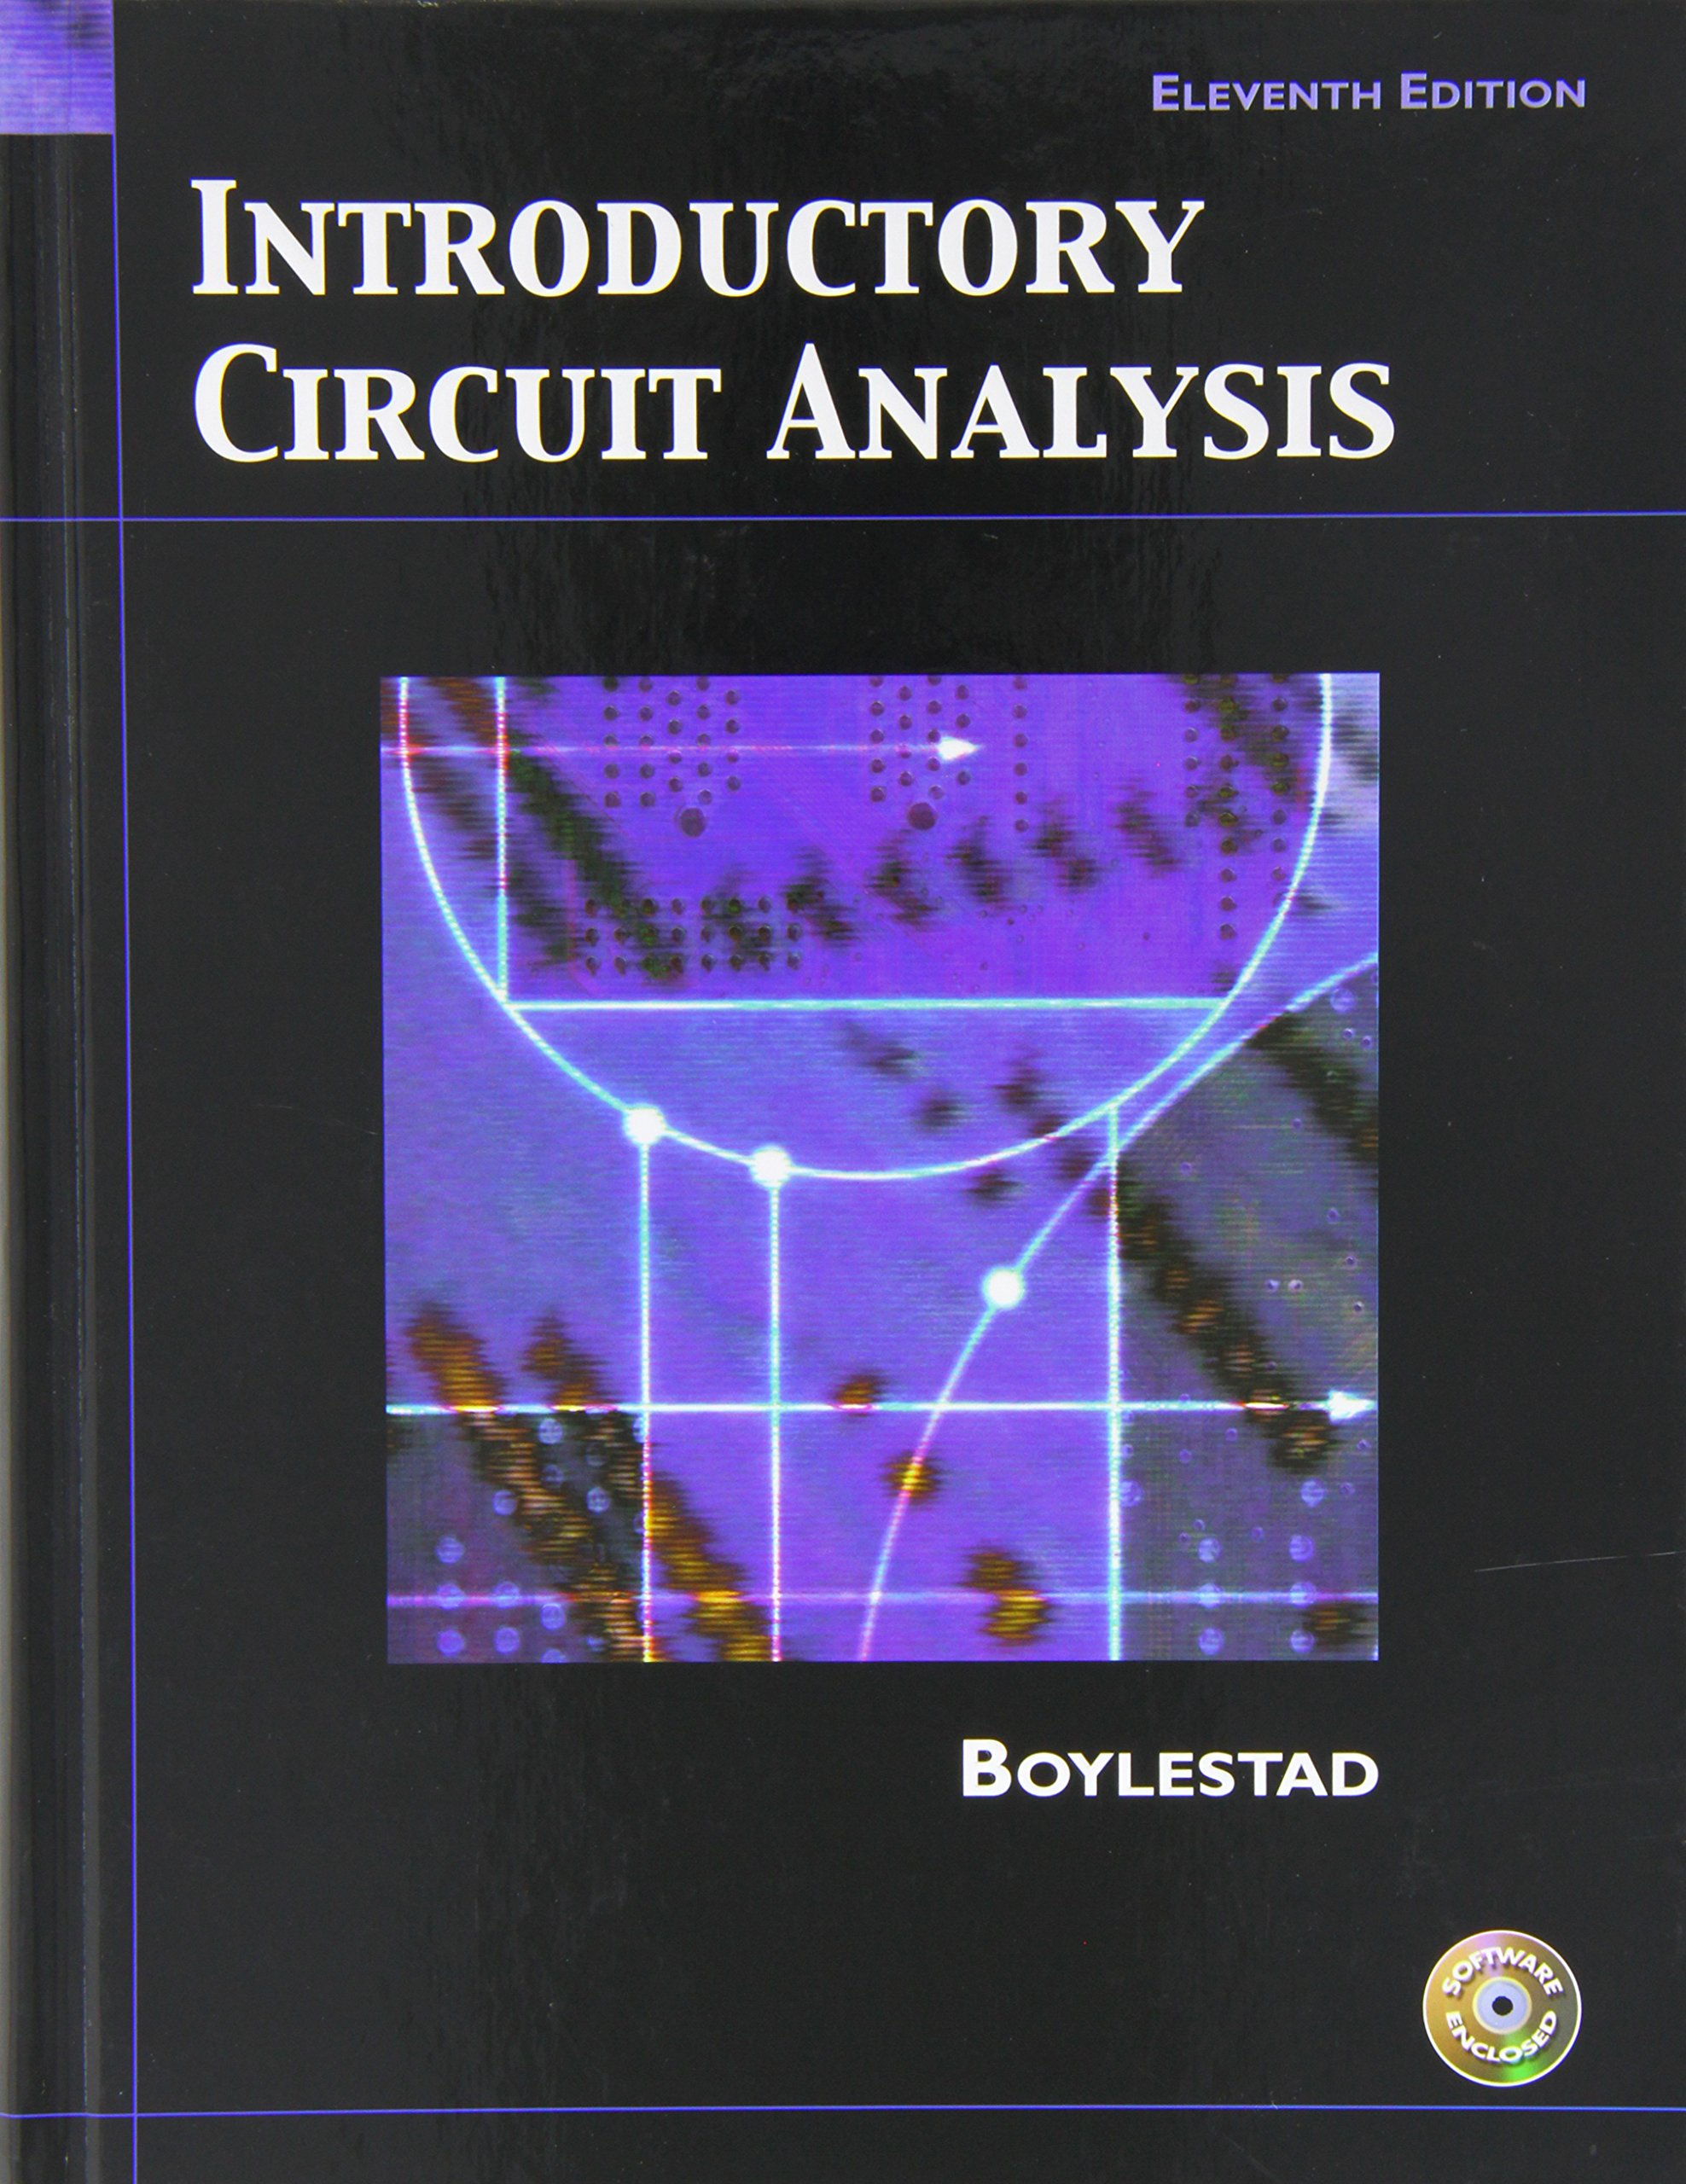 Introductory Circuit Analysis: United States Edition: Amazon